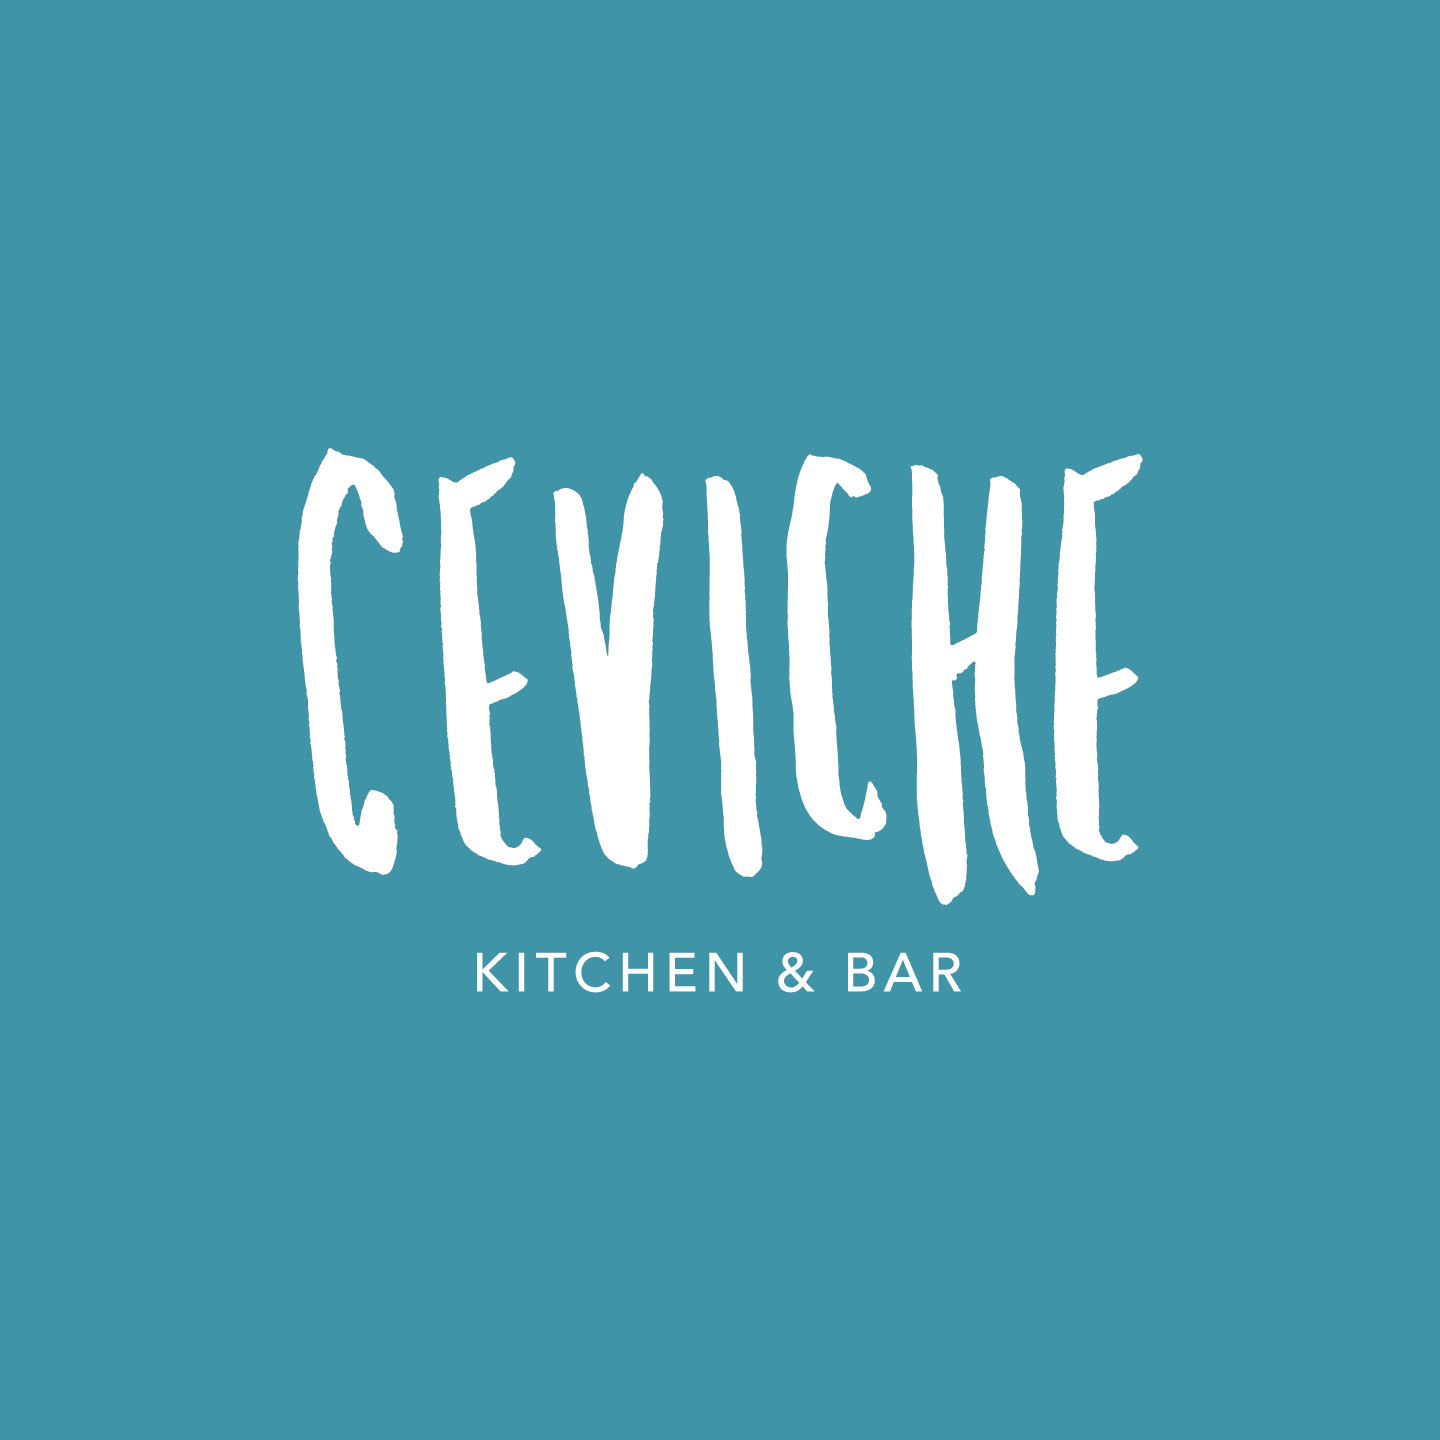 Ceviche Kitchen & Bar